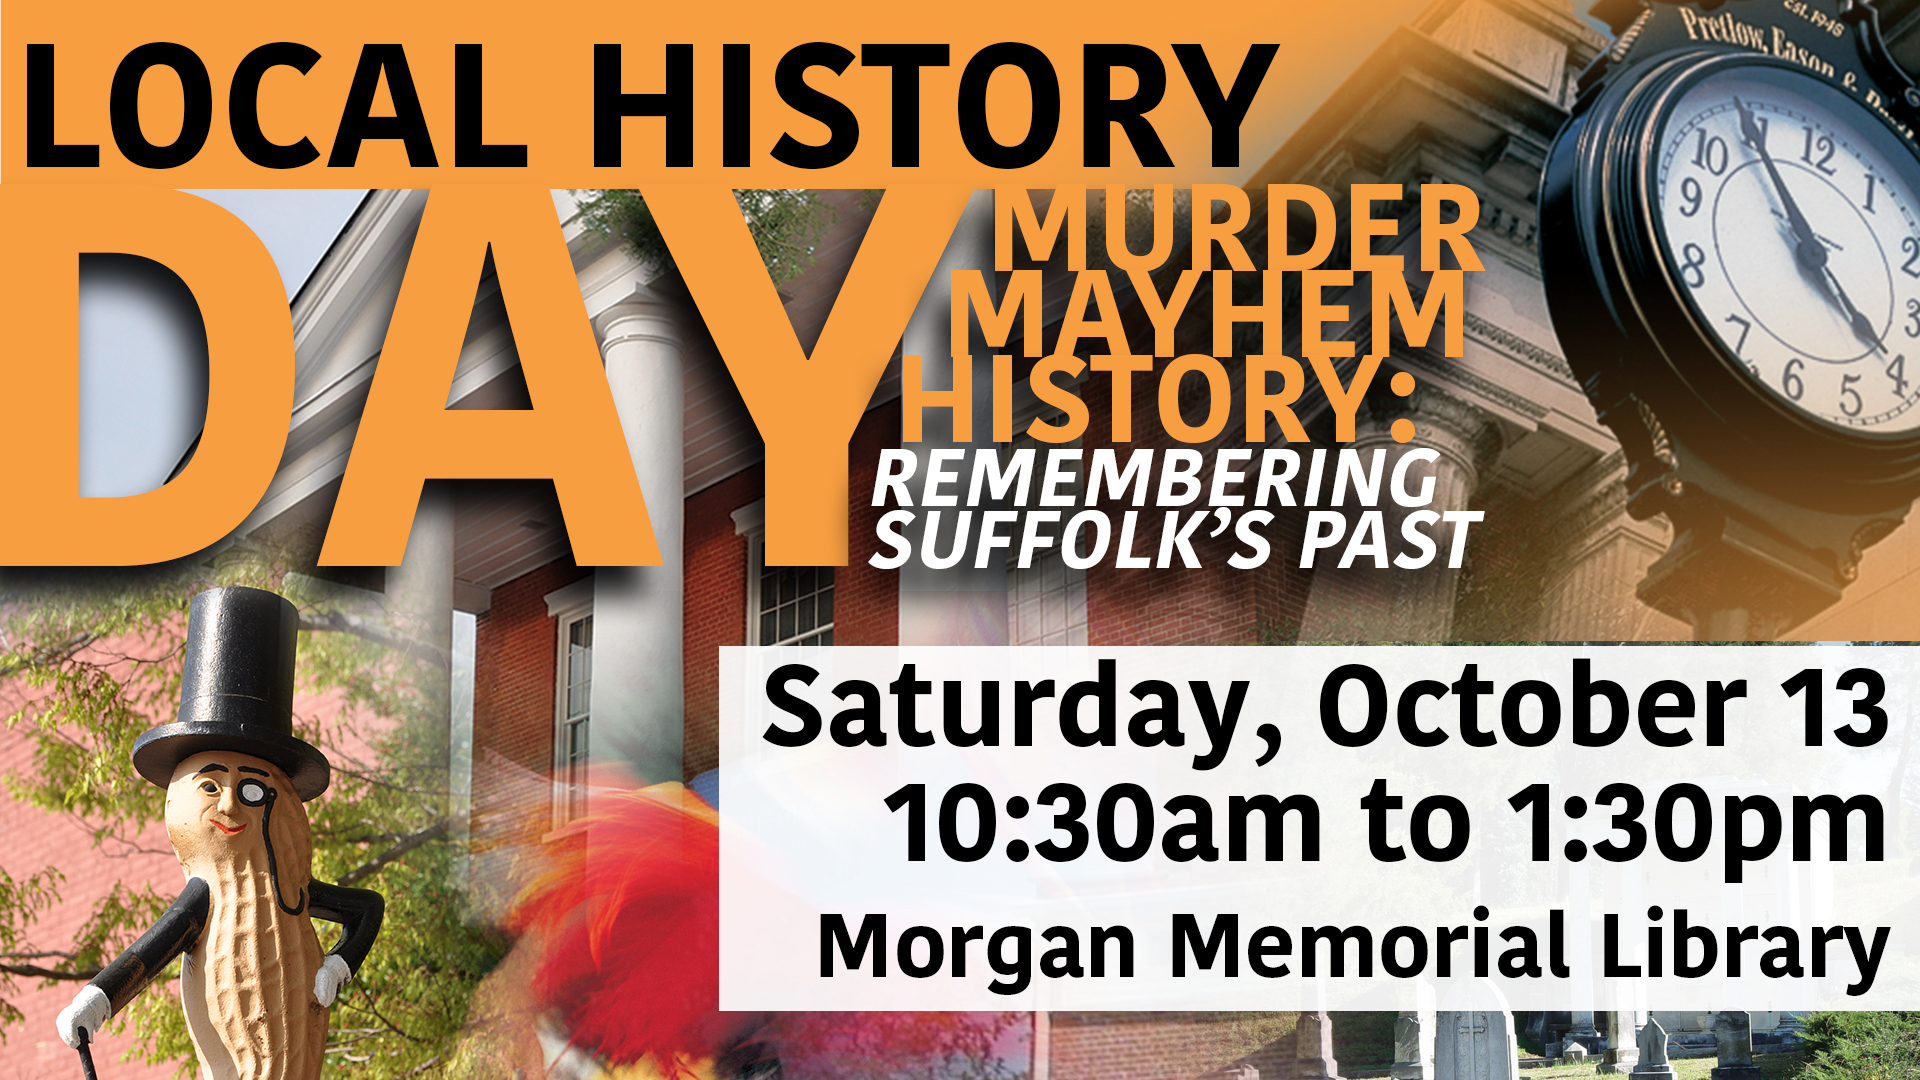 Murder, Mayhem, History....Remembering Suffolk's Past